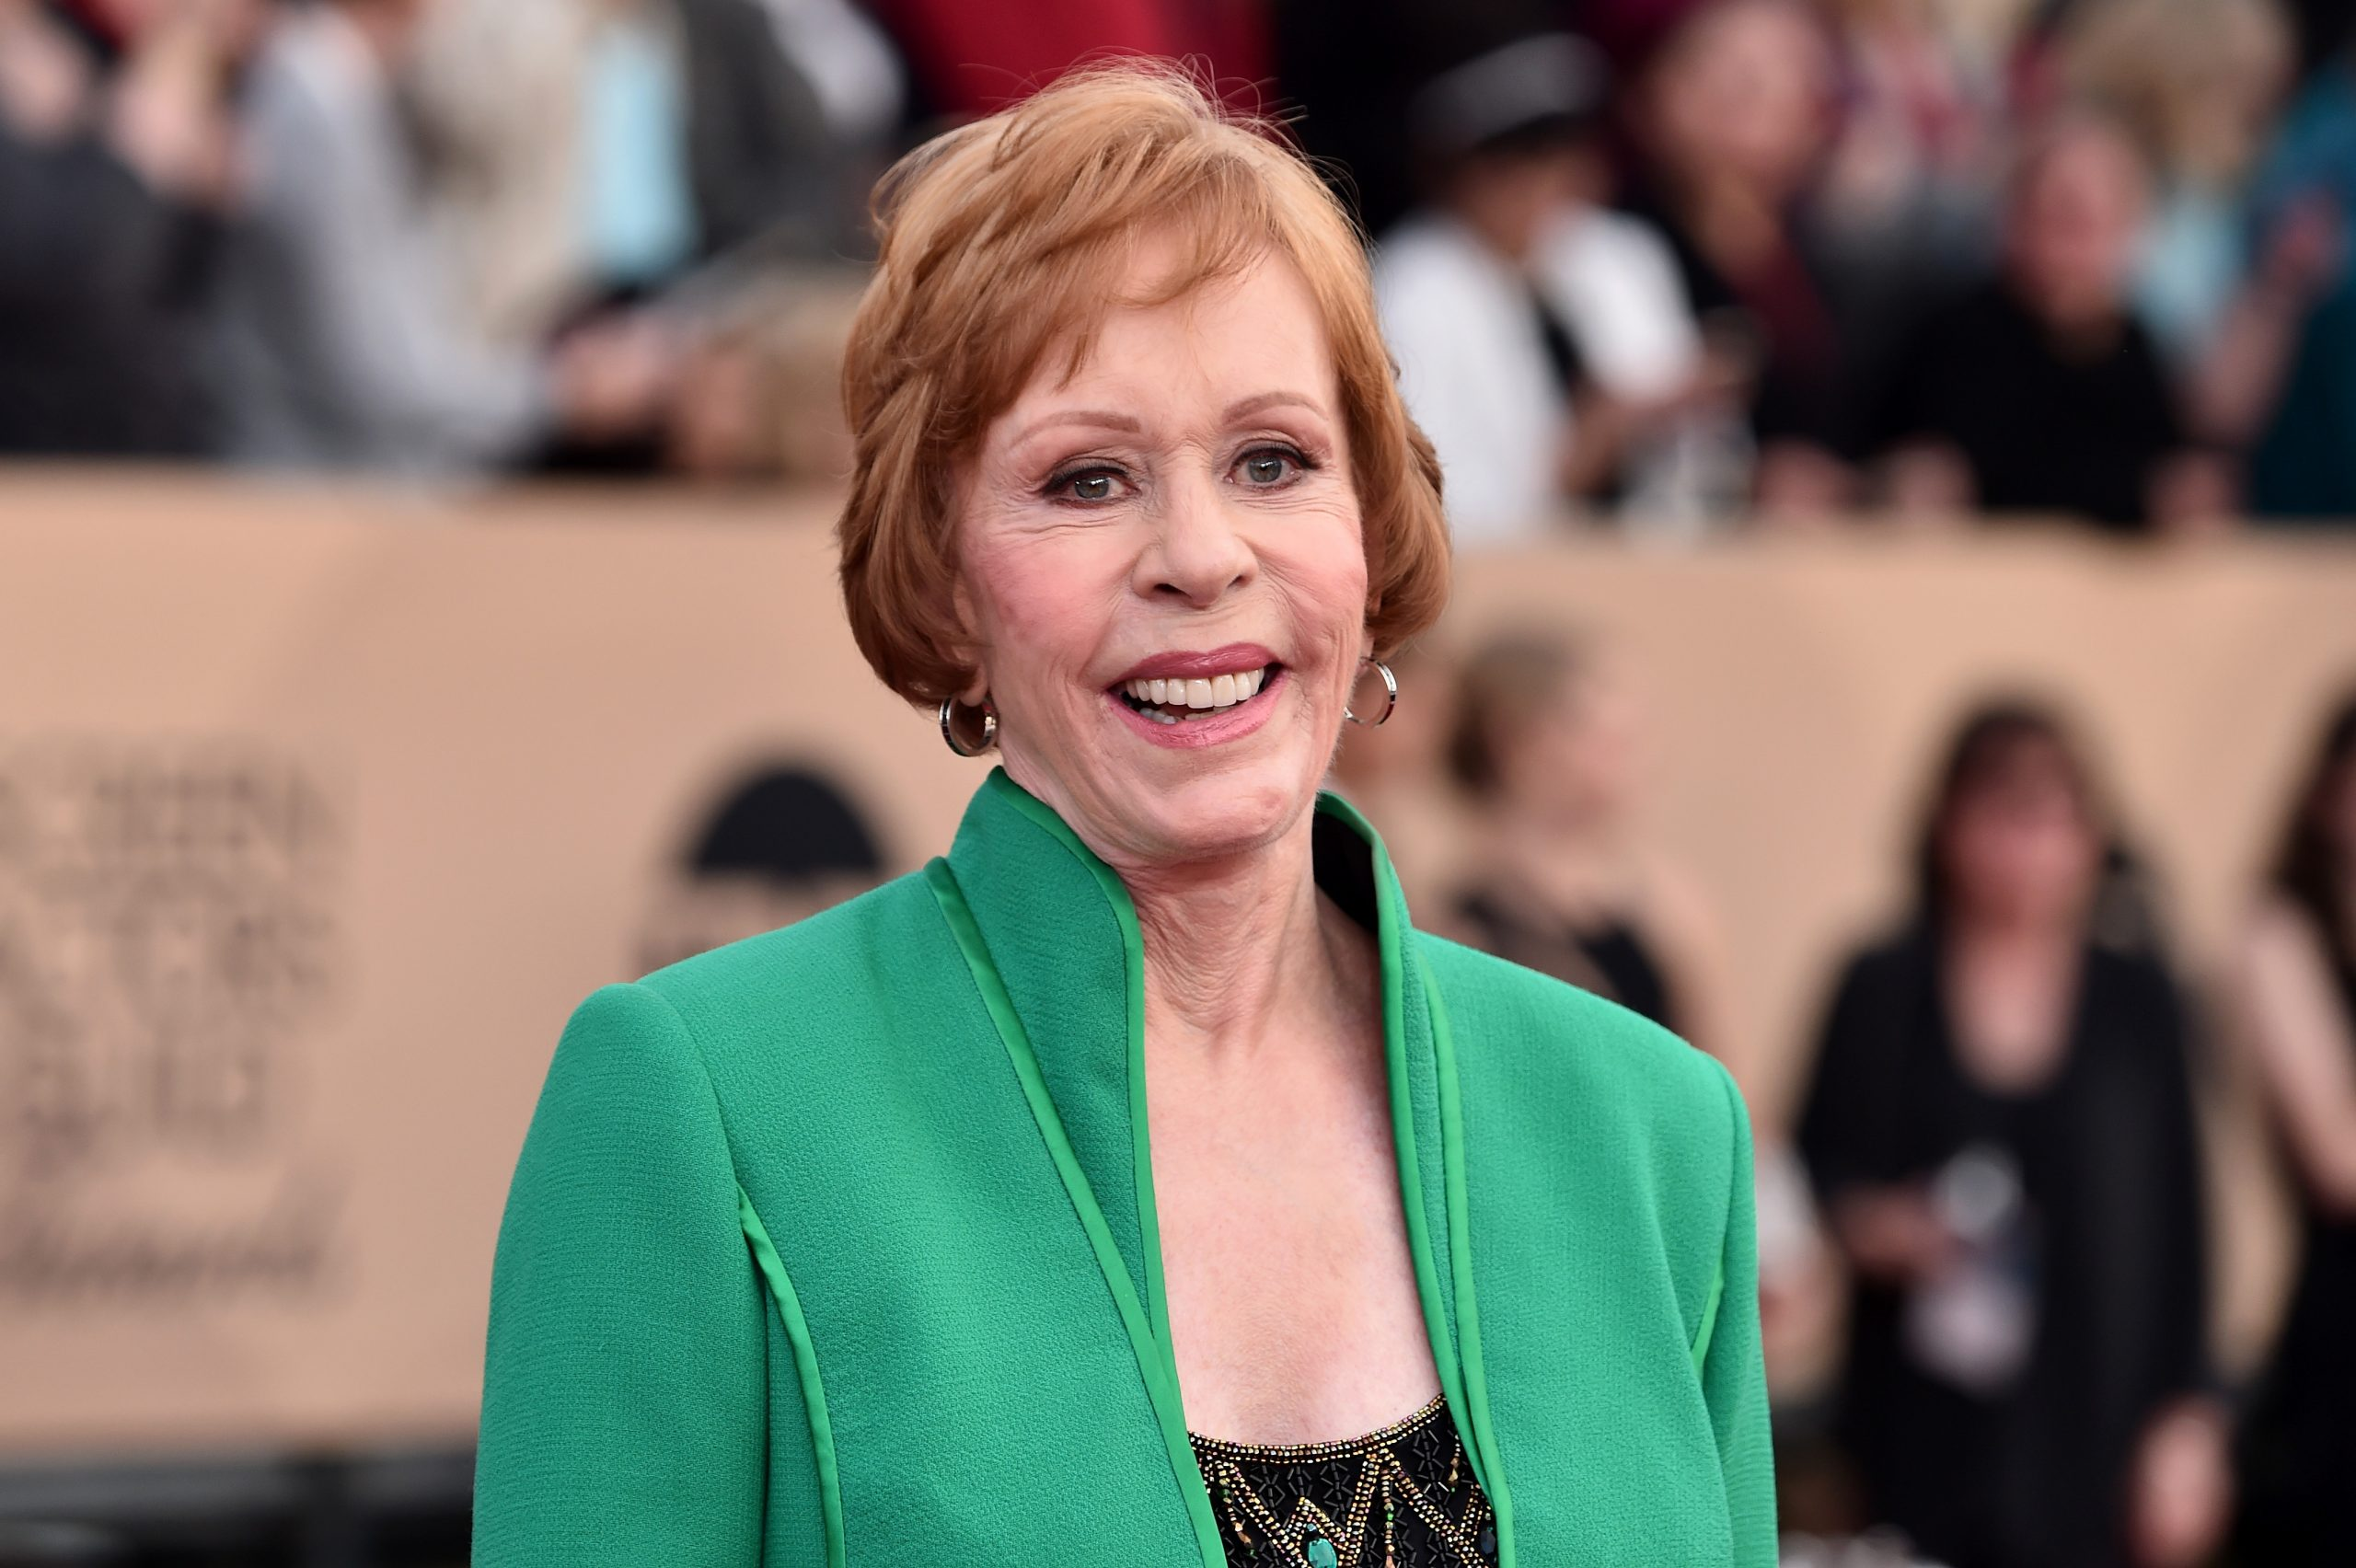 Carol Burnett dons a green blazer and smiles on the red carpet at the Screen Actors Guild Awards